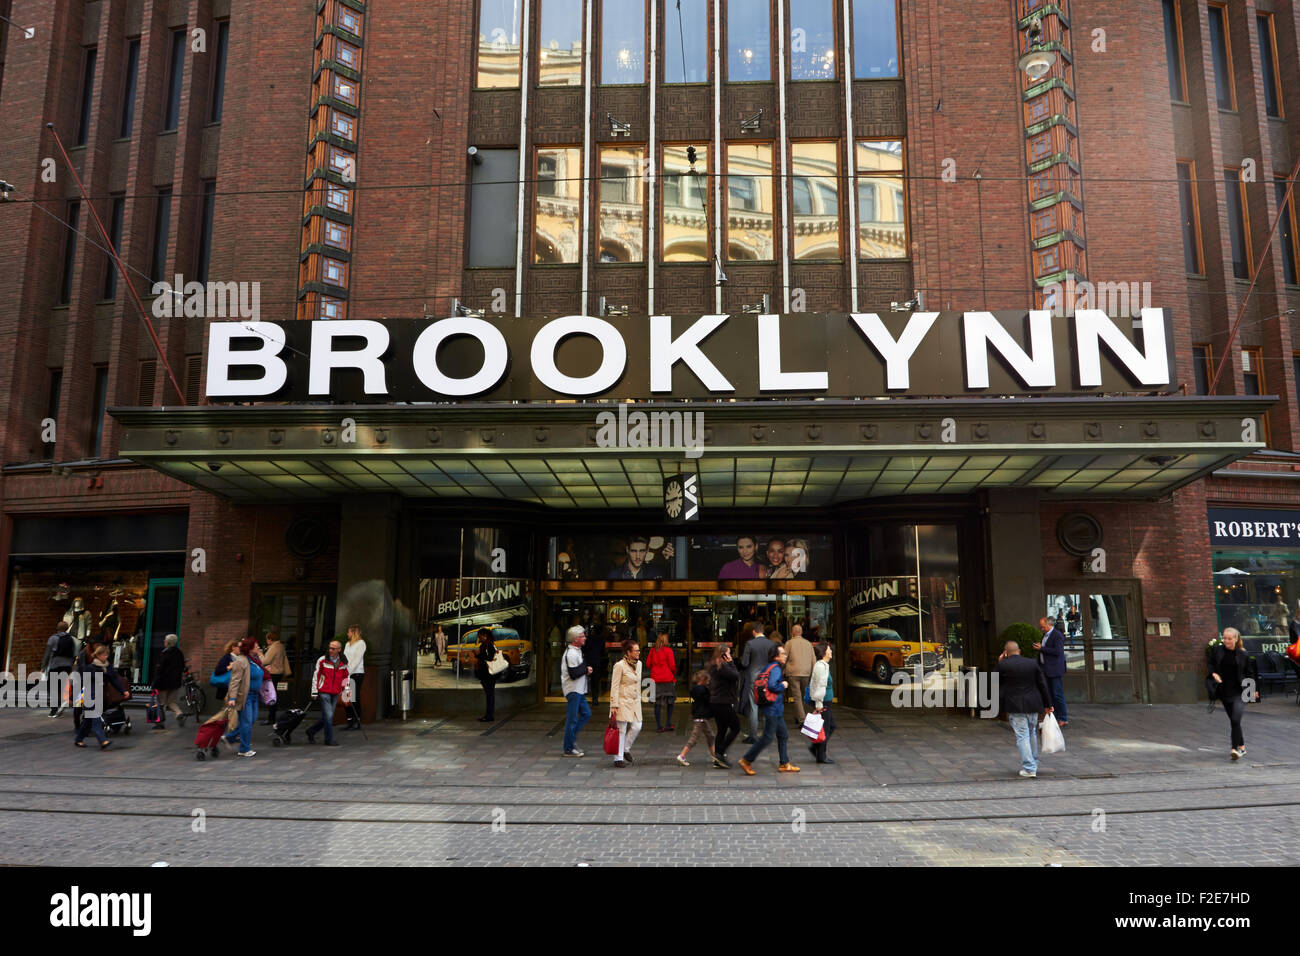 Stockmann department store with Brooklynn advertise, Helsinki Finland - Stock Image